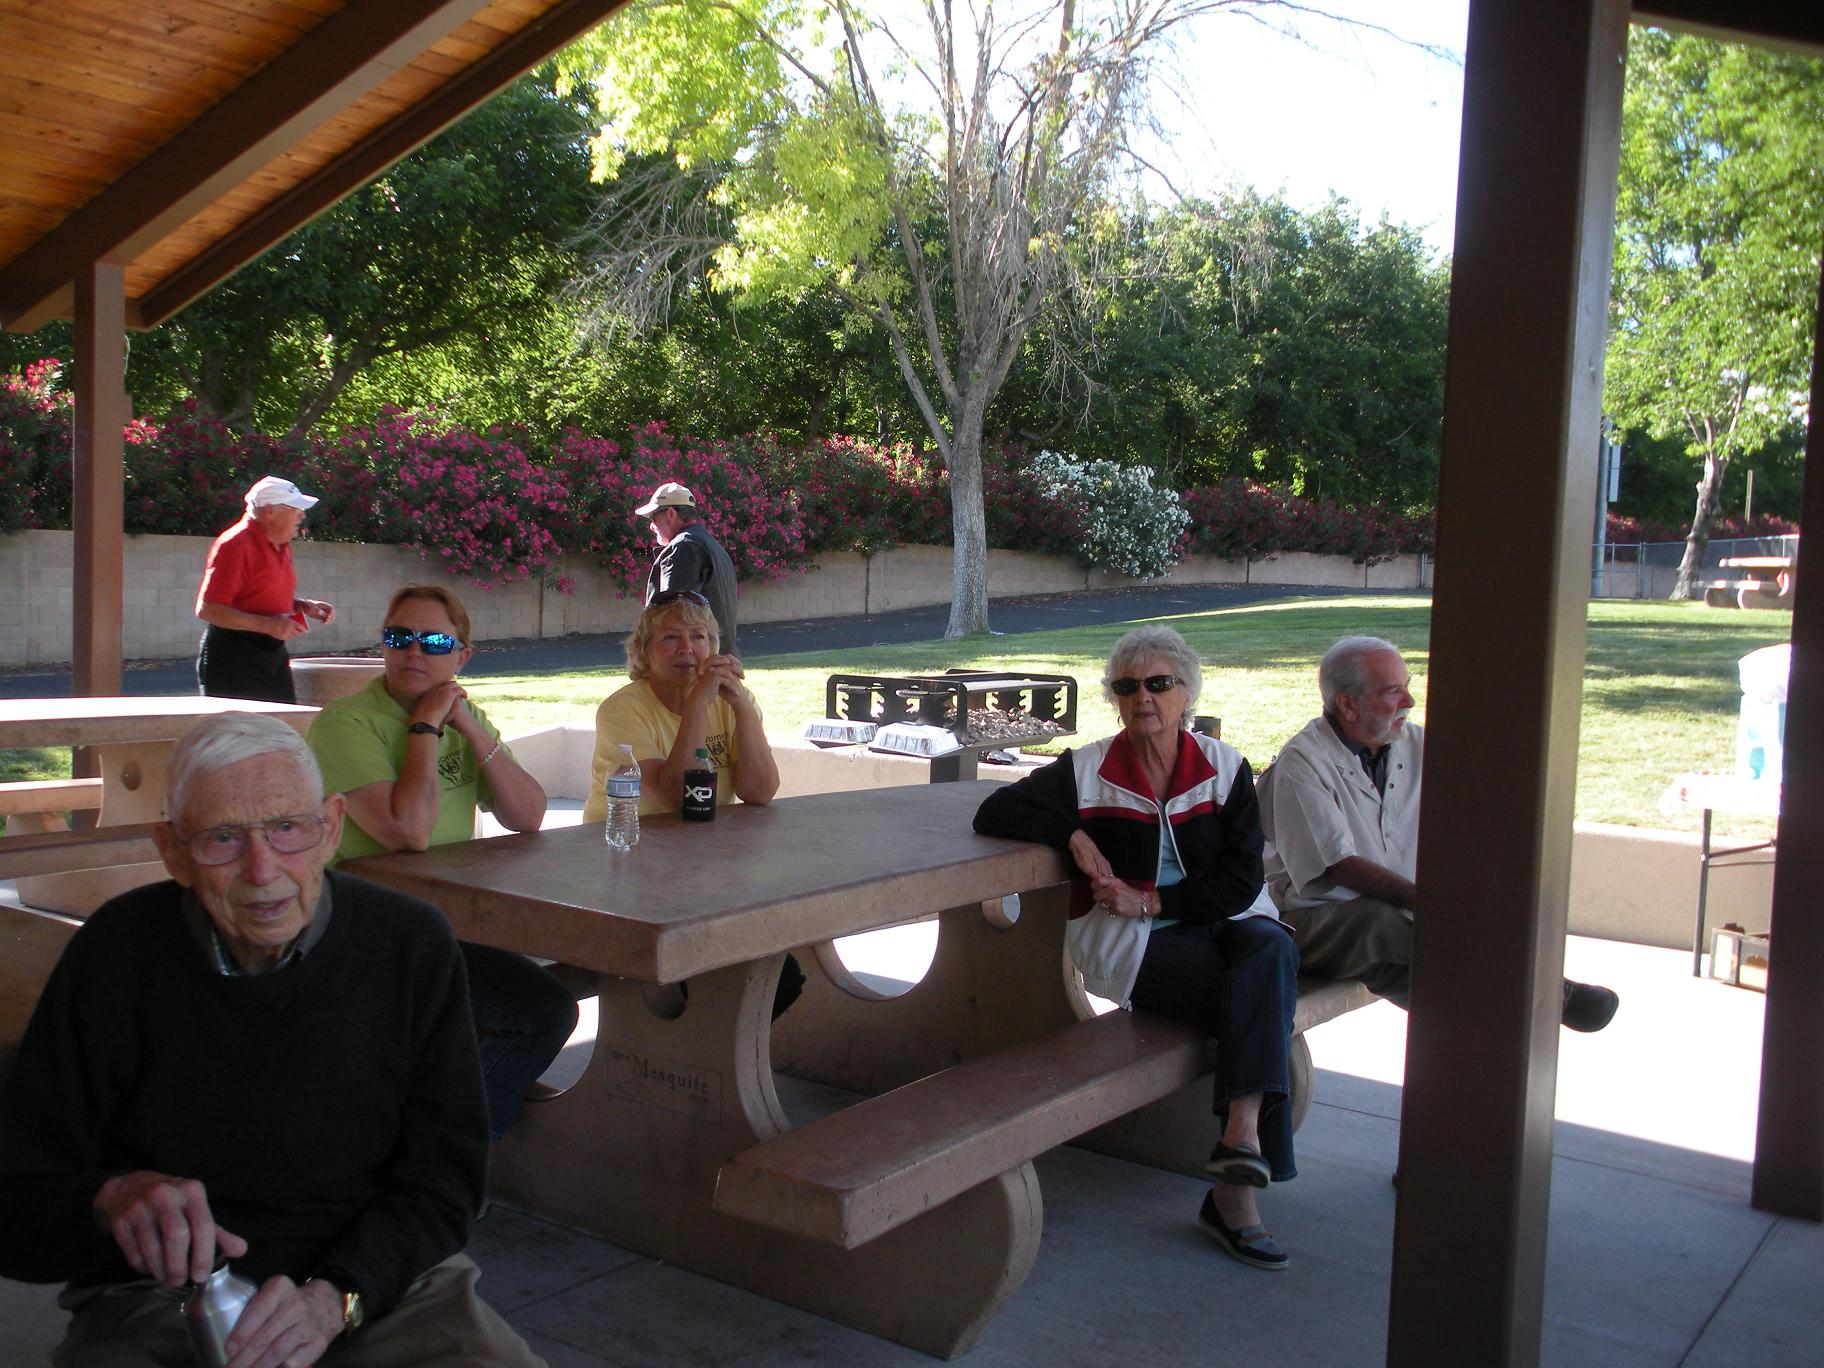 Dames enjoy the last bit of cool weather in Mesquite